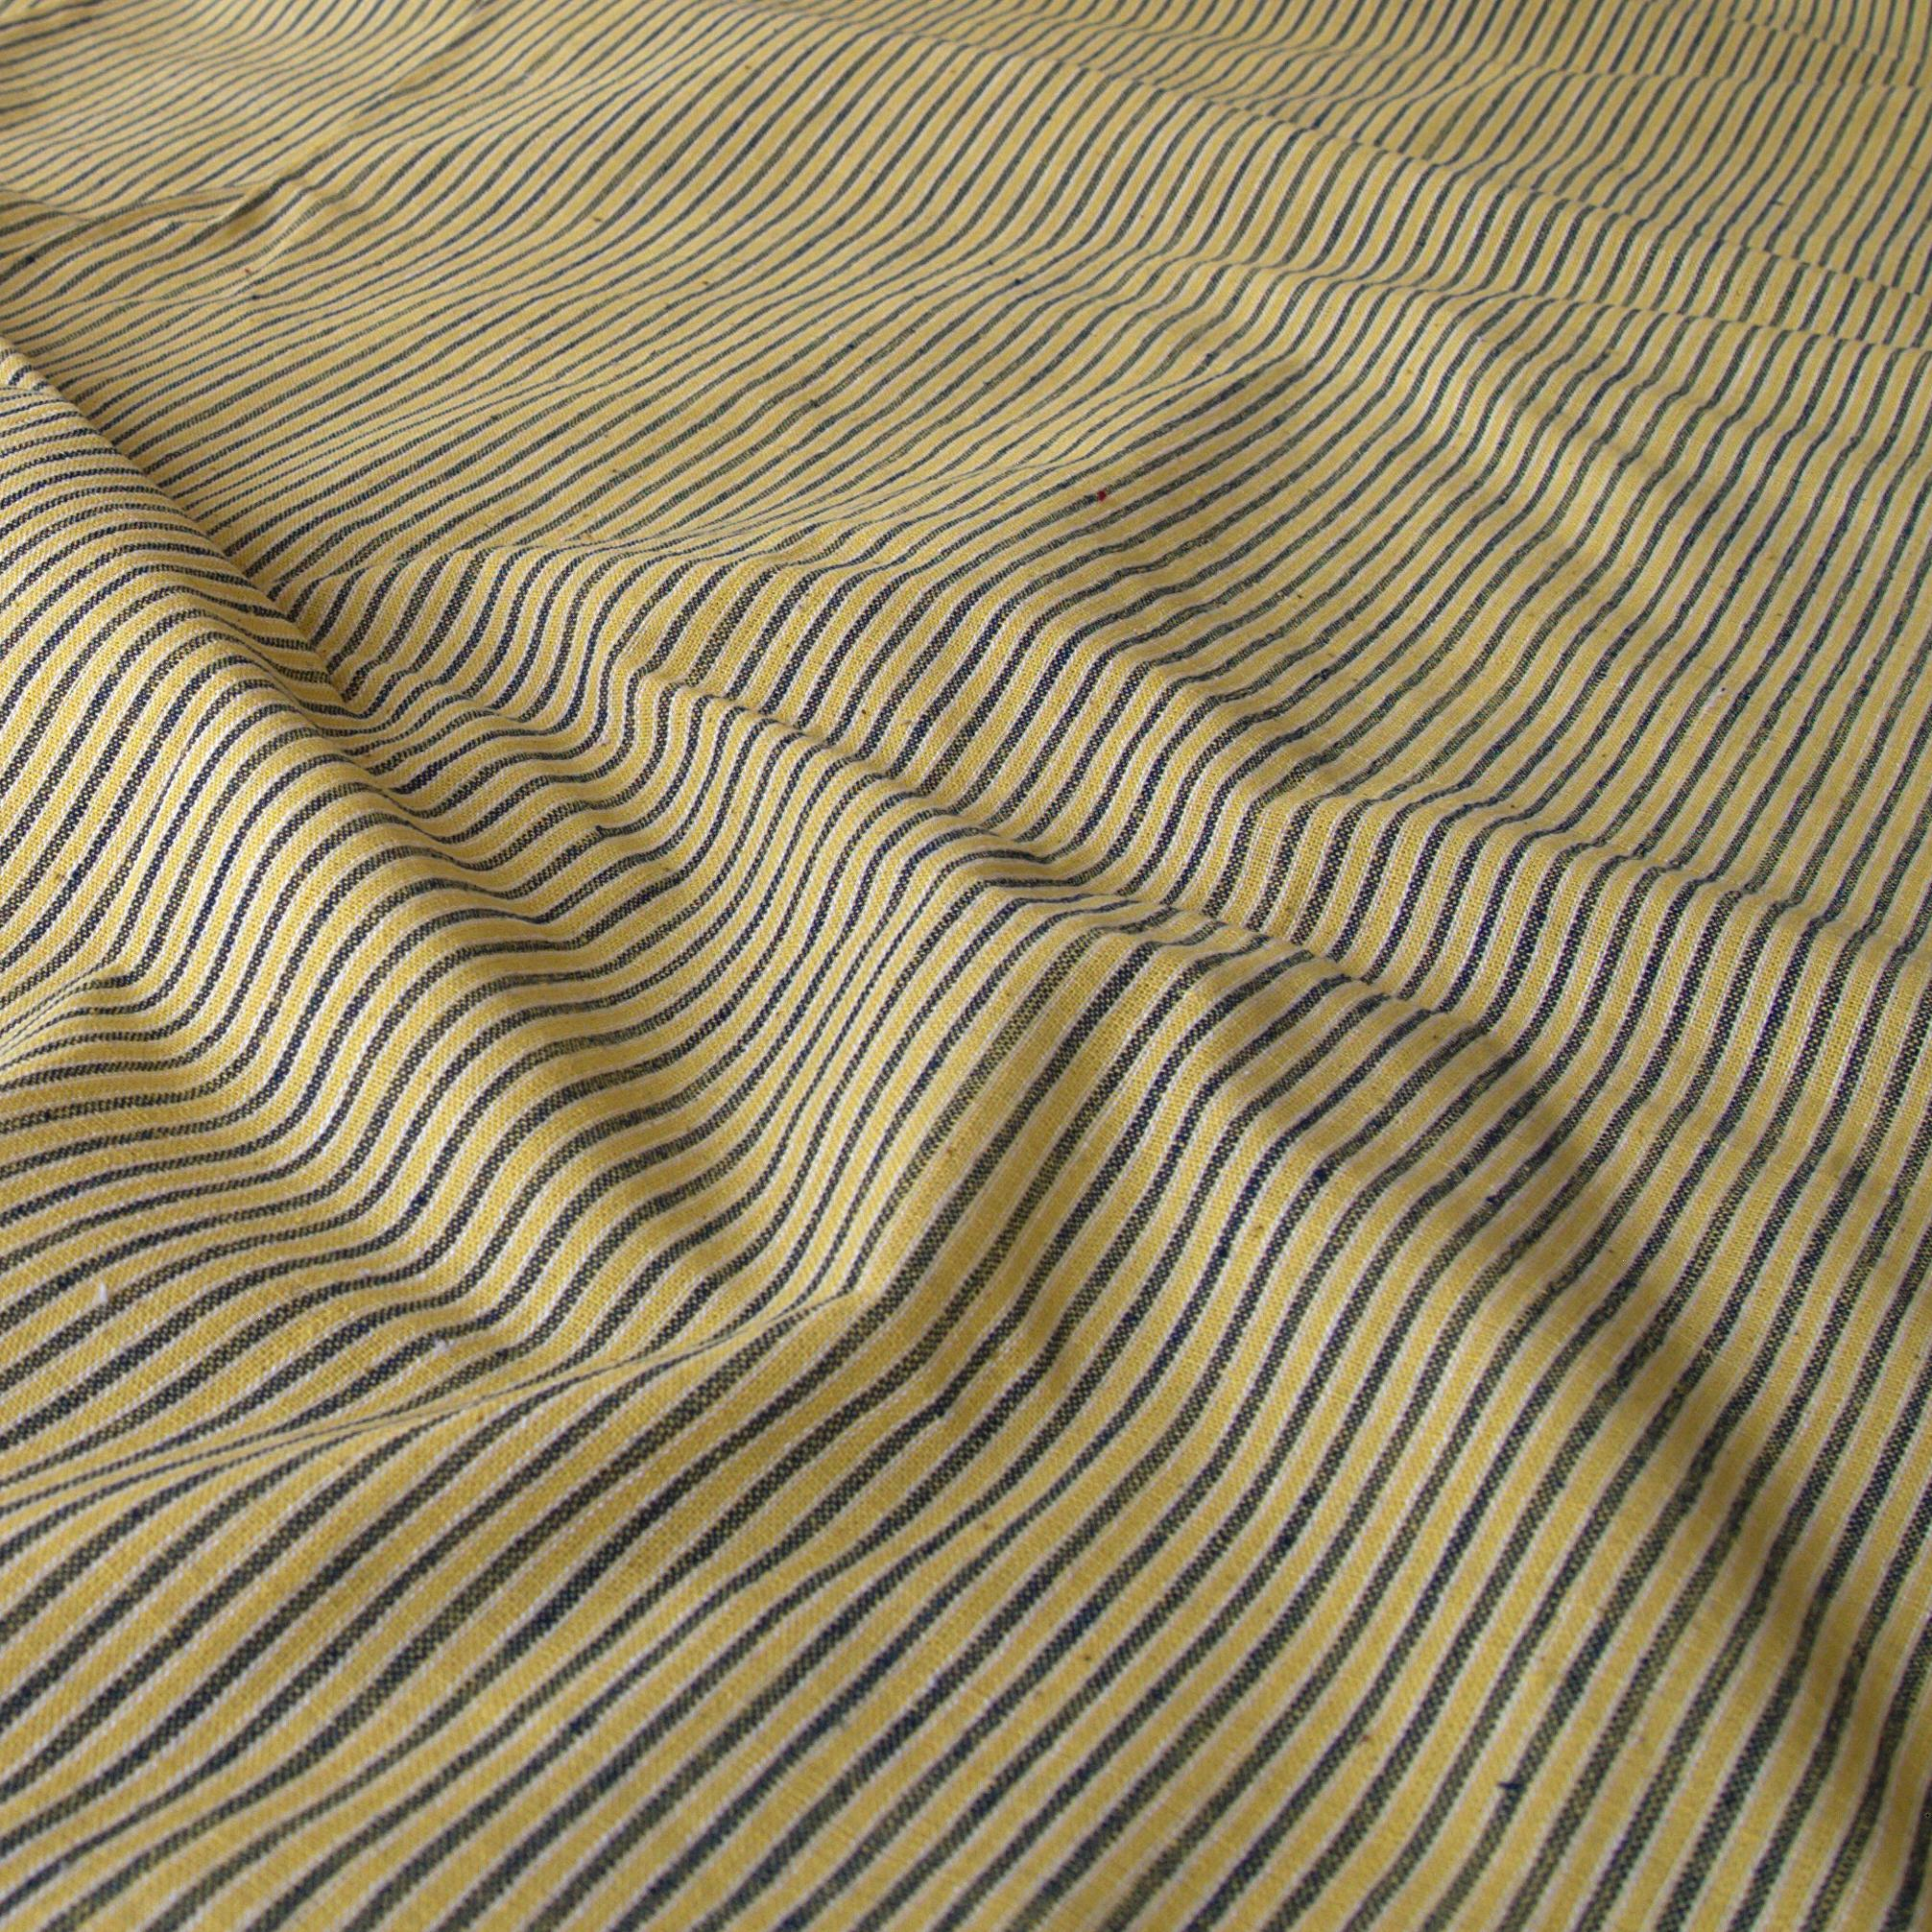 100% Handloom Cotton - Stripes - Pomegranate Yellow Warp & Weft, White and Indigo Warp - Contrast